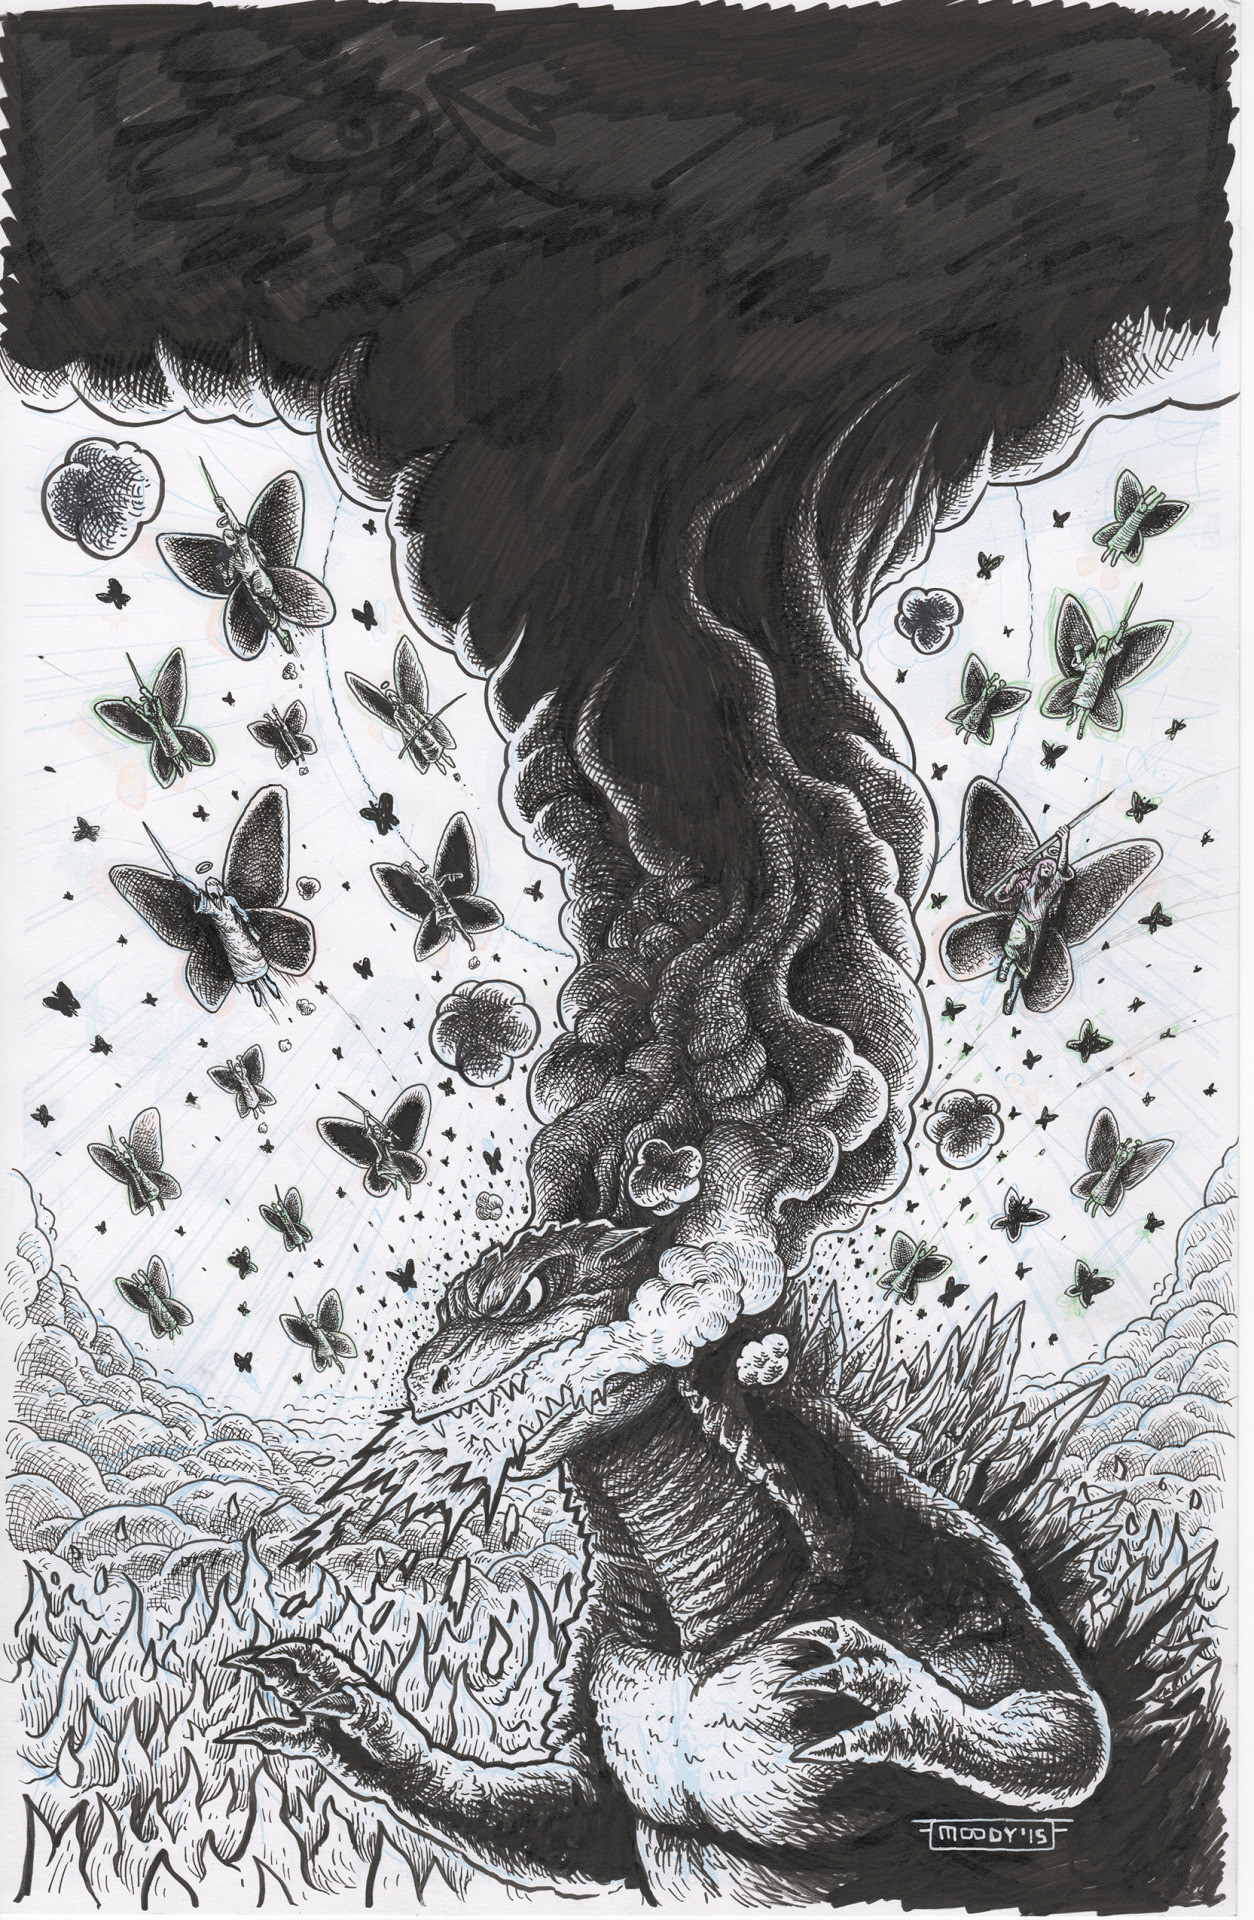 Godzilla in Hell #3 cover art scan.